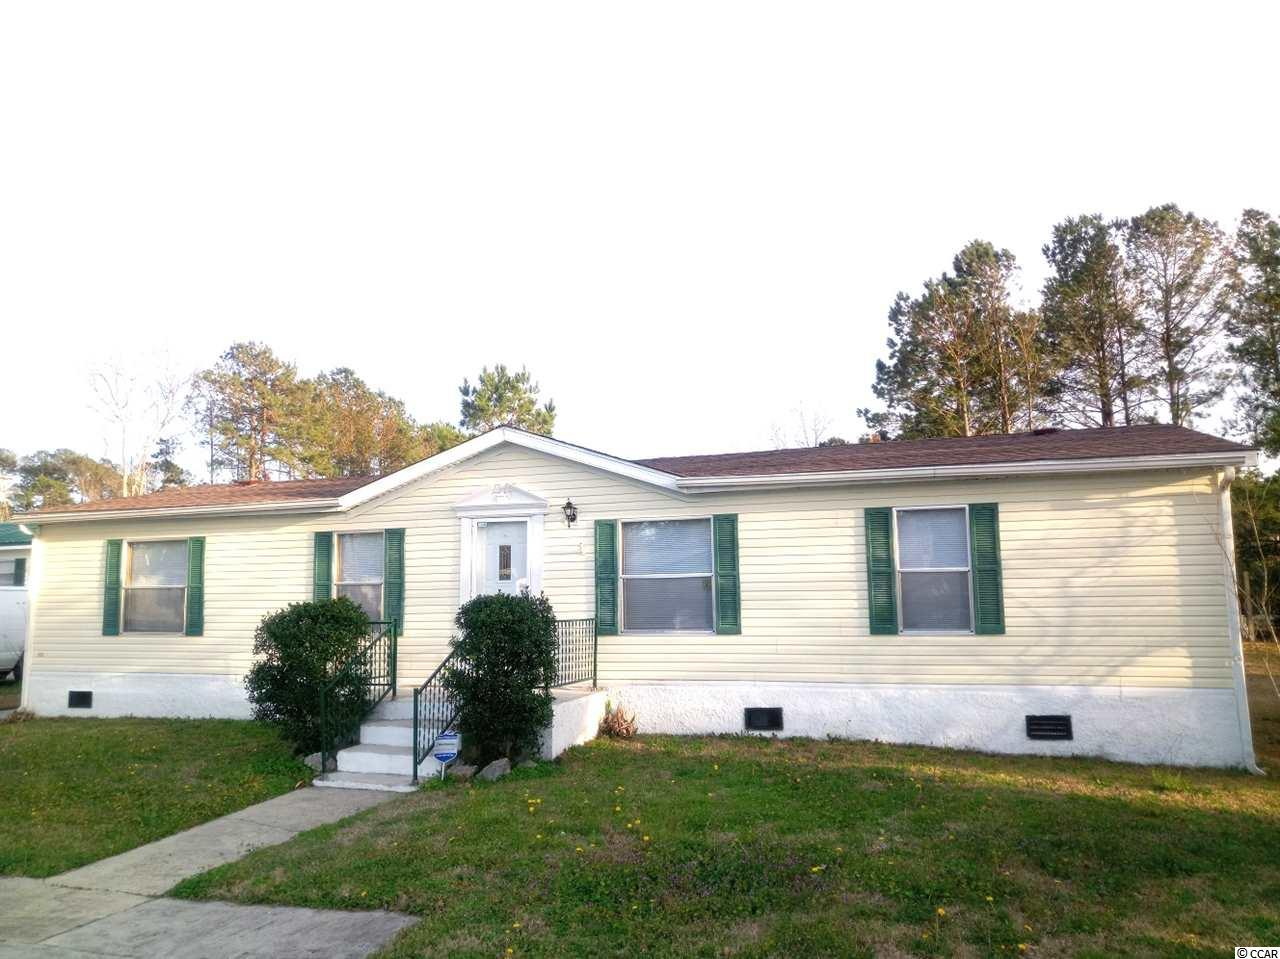 3 BA, 2 BA home with carolina room and spacious open floor plan. New carpets and paint. Newer roof. Real hardwood floors & nice tile floors. Great North Pointe neighborhood/hoa with pool. Ample parking.